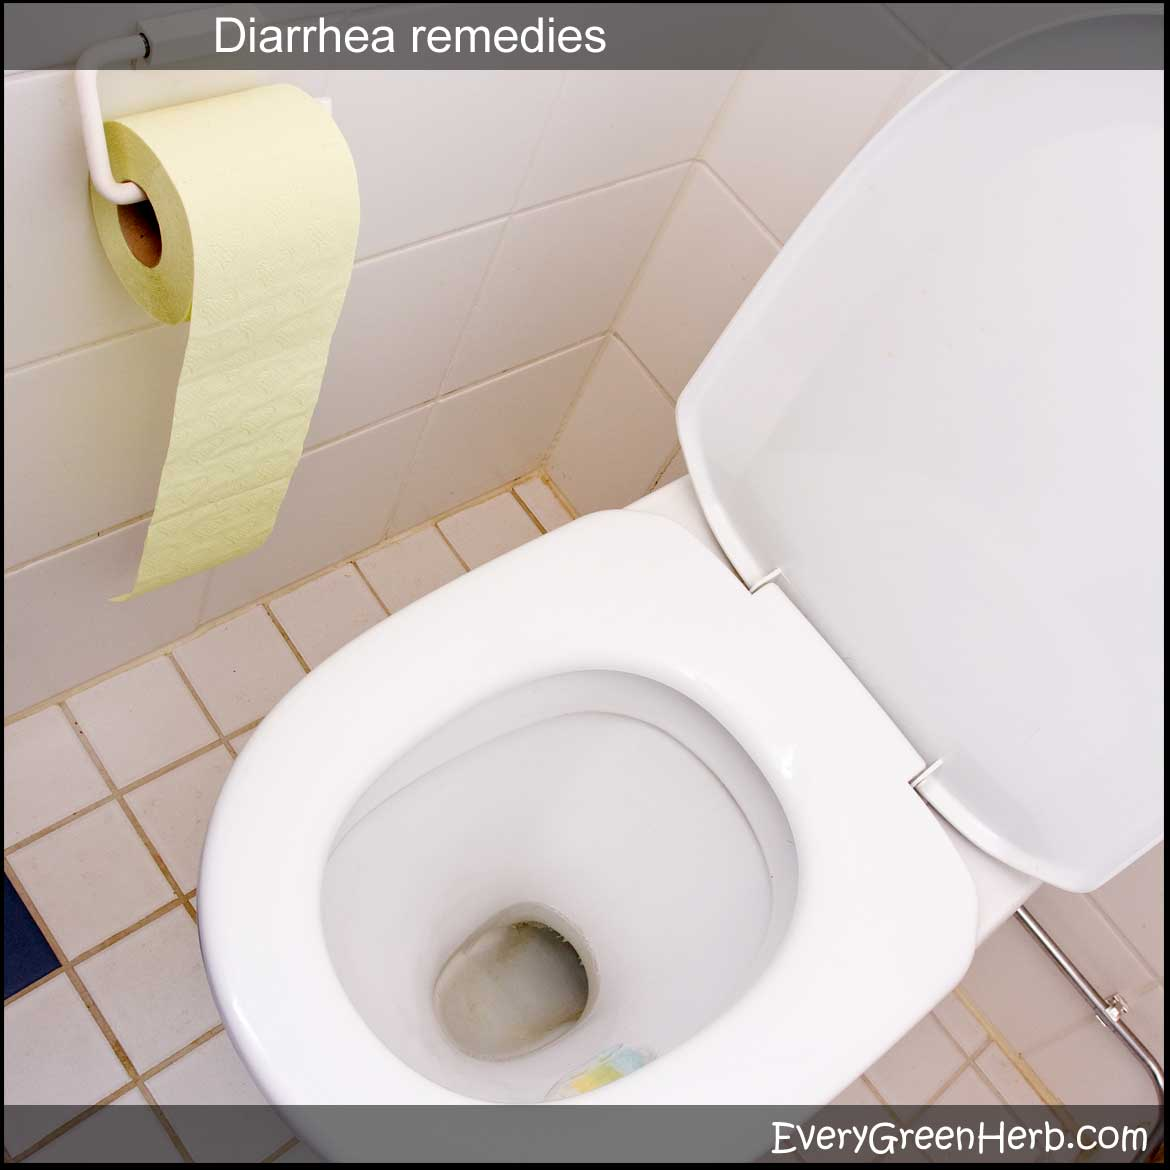 Tips for treating diarrhea with herbs, essential oils, and home remedies